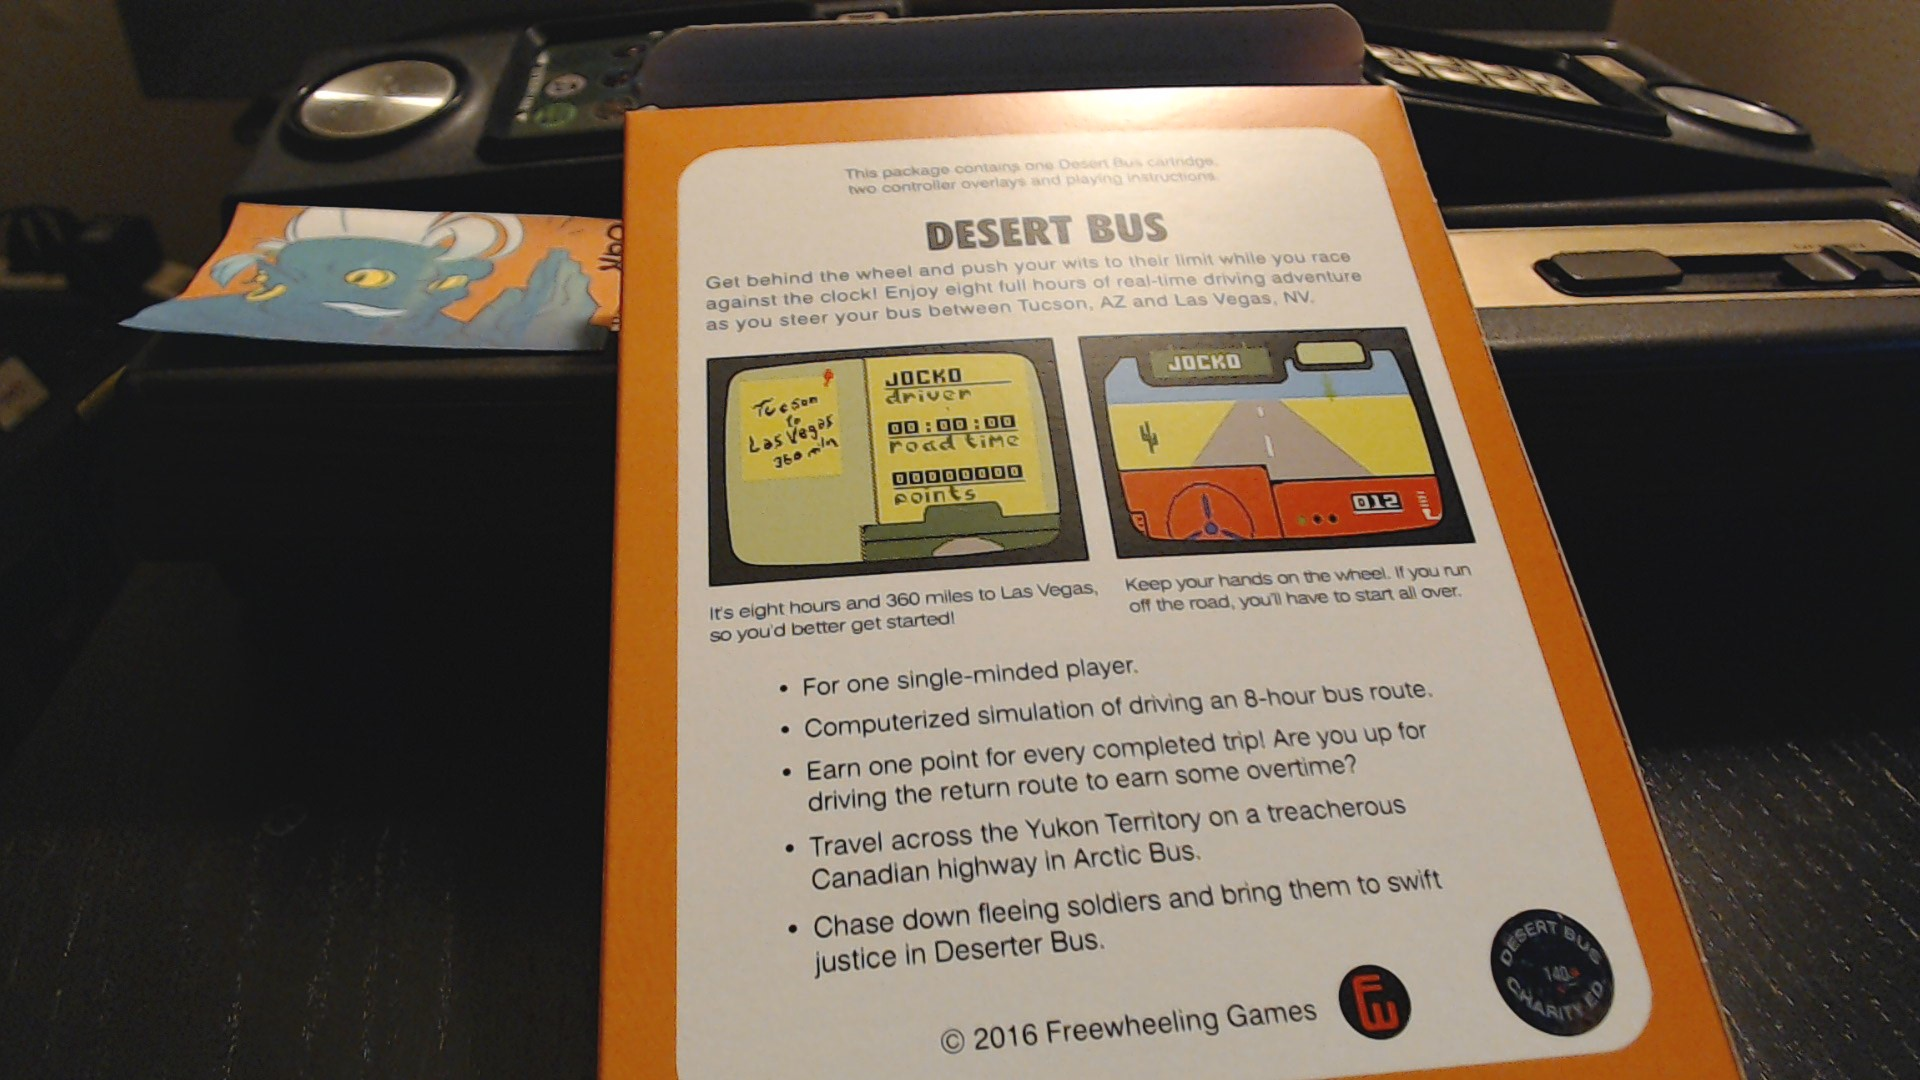 Desert Bus: Deserter Bus 1,248 points